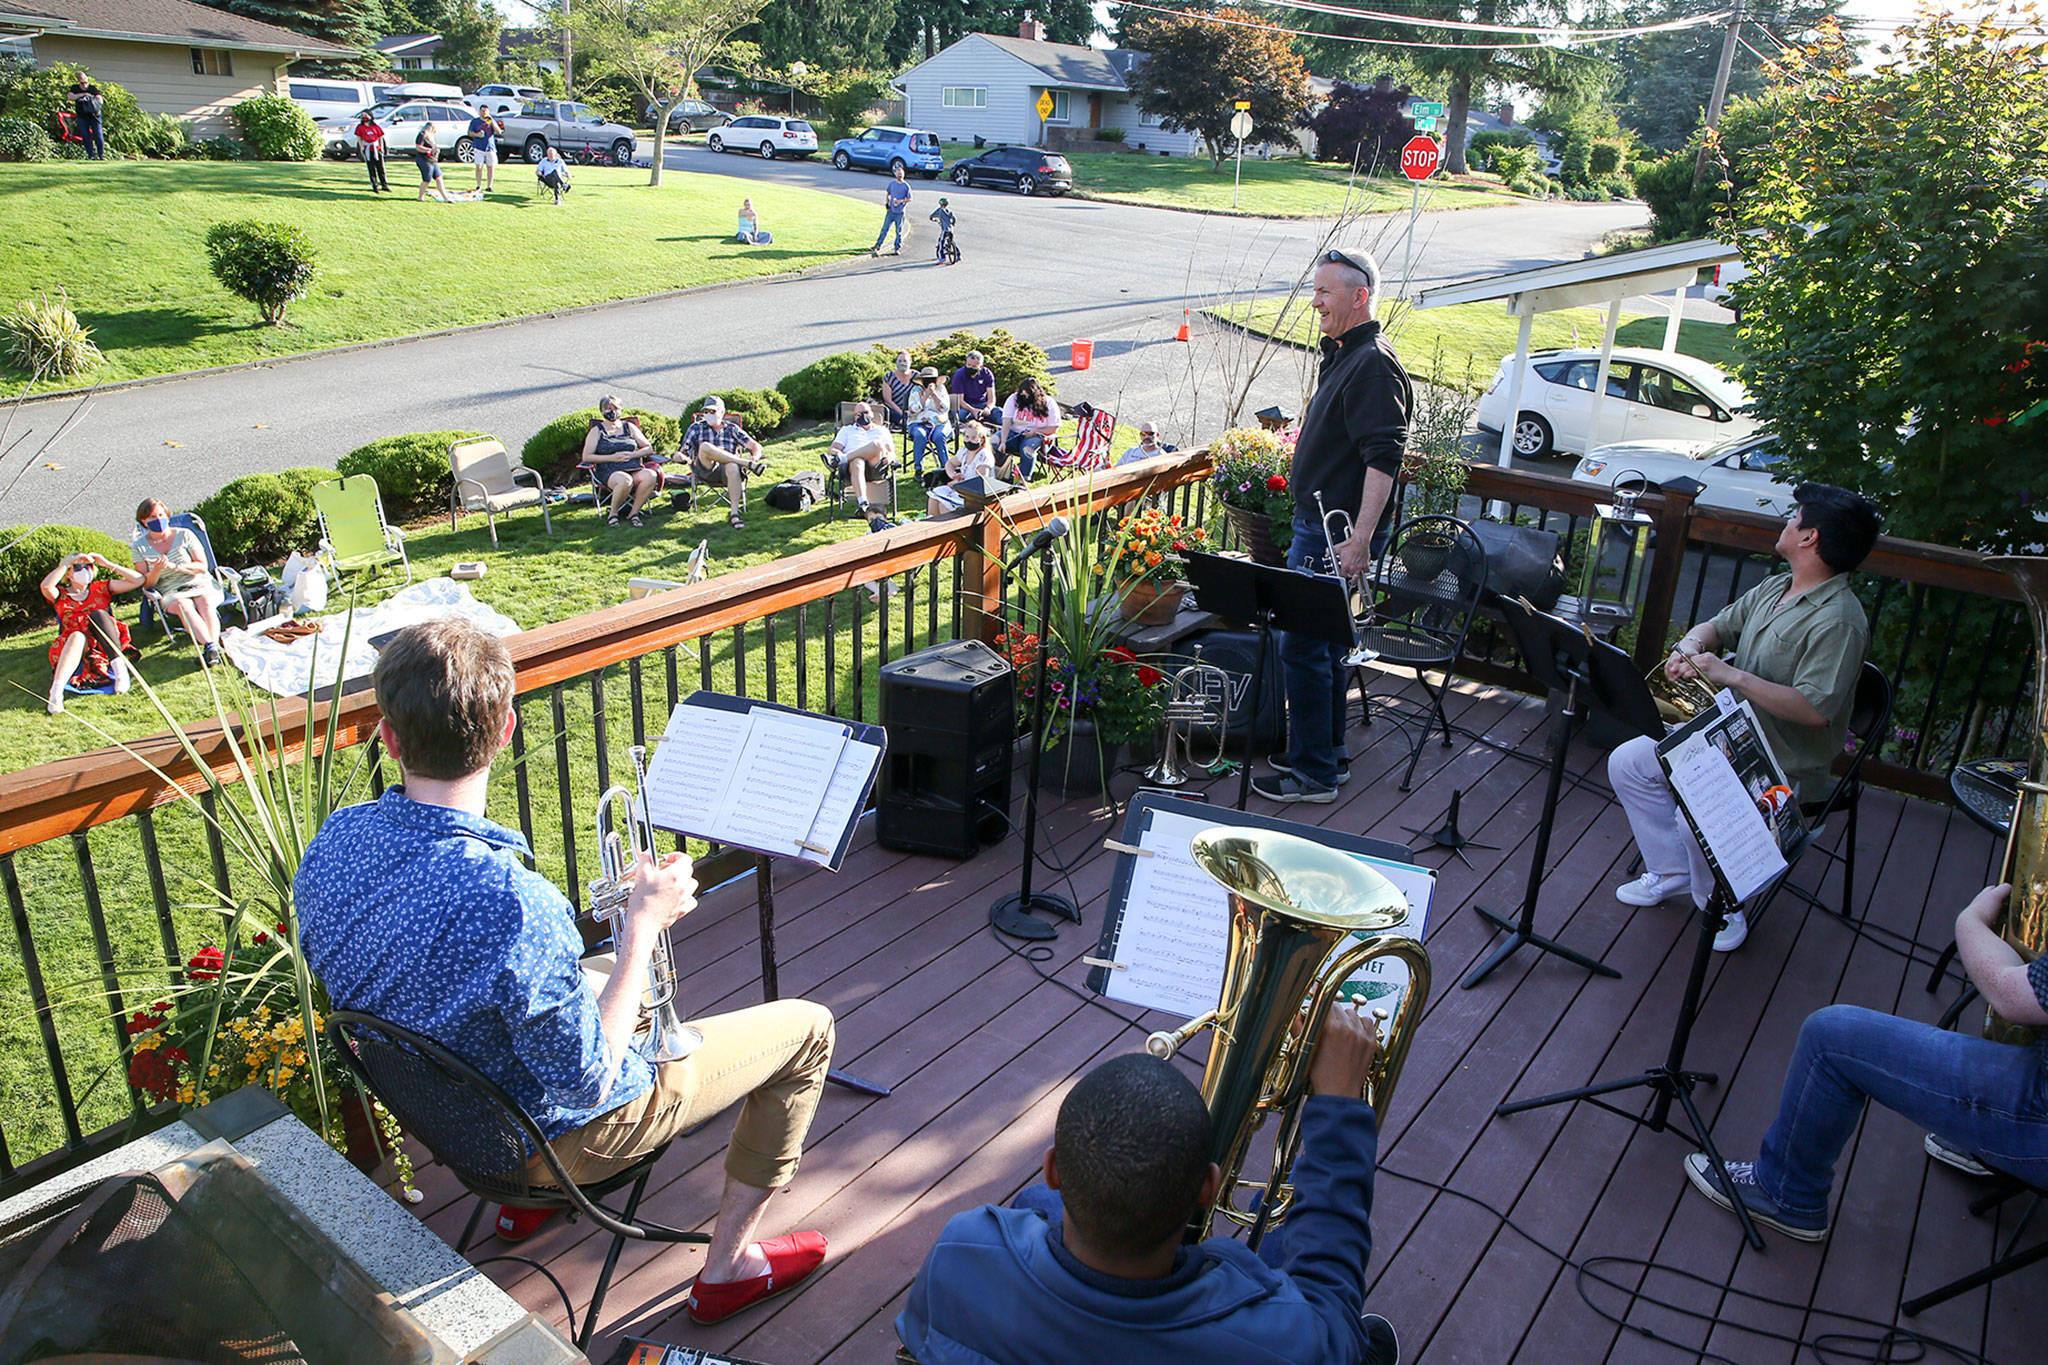 Jake Bergevin introduces musicians during the Thursday night concert in Everett on June 25, 2020. (Kevin Clark / The Herald)